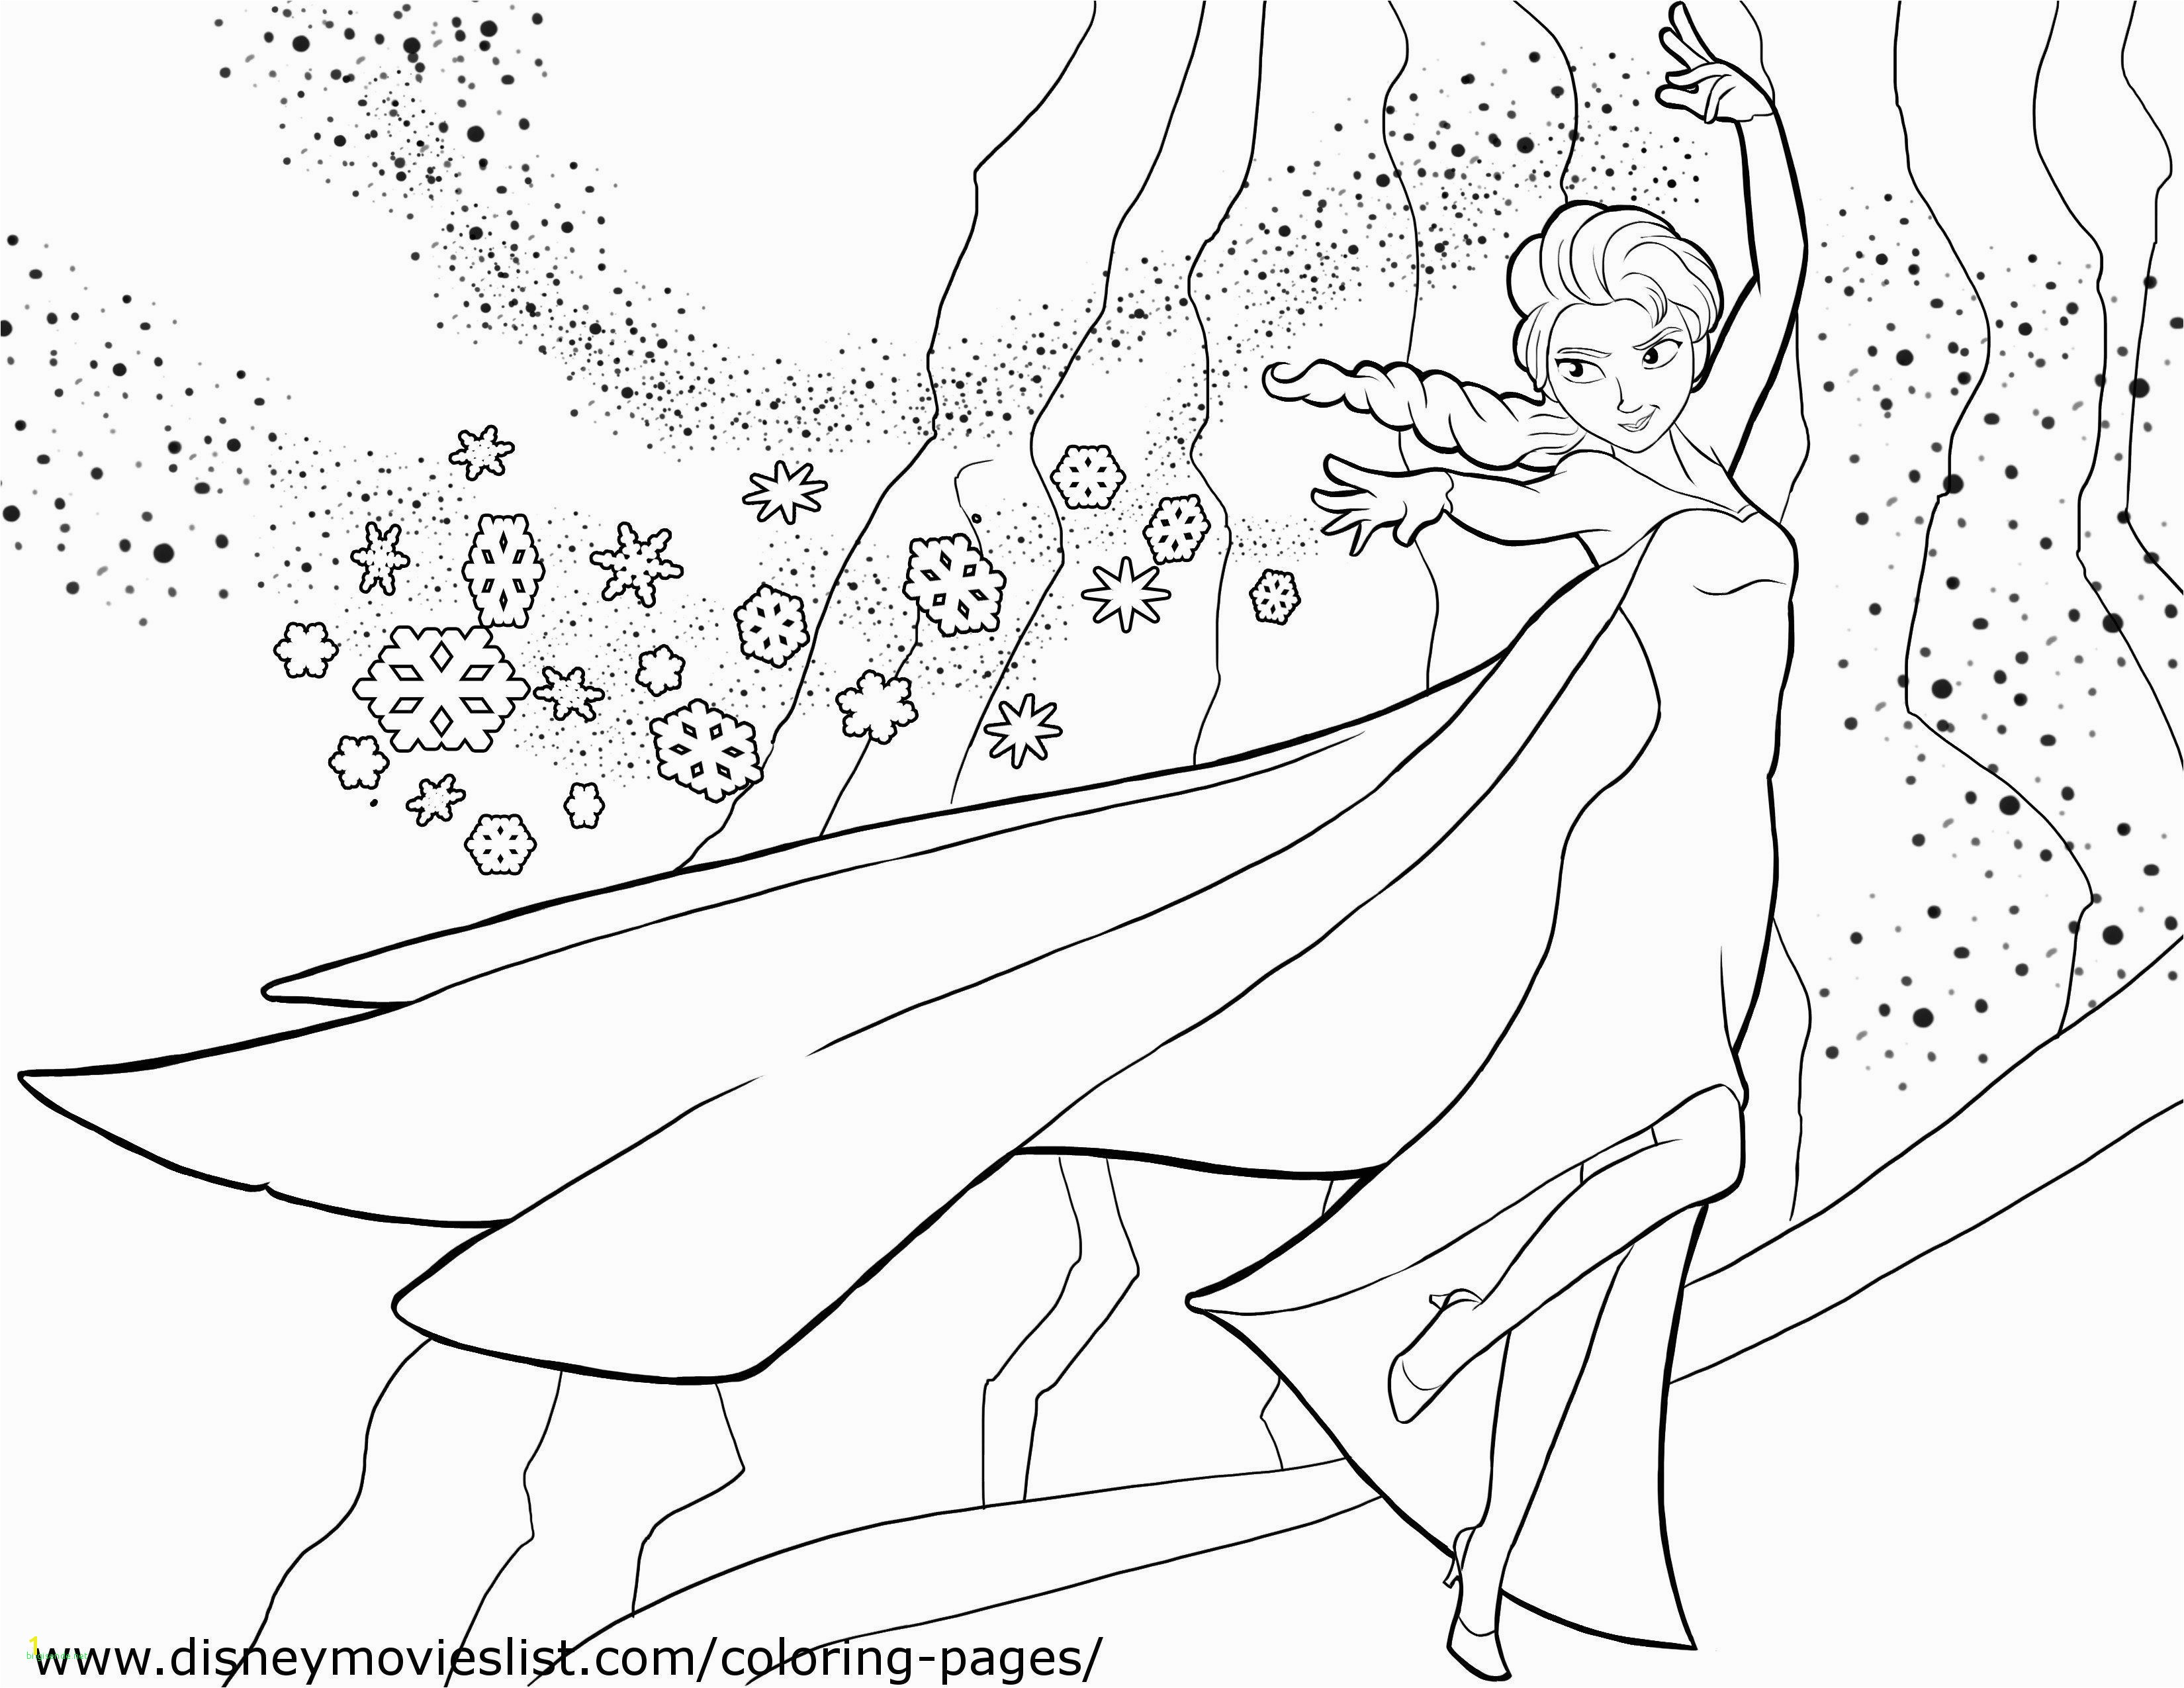 Frozen Printable Coloring Pages Pdf Lovely Disney Characters Coloring Pages Frozen